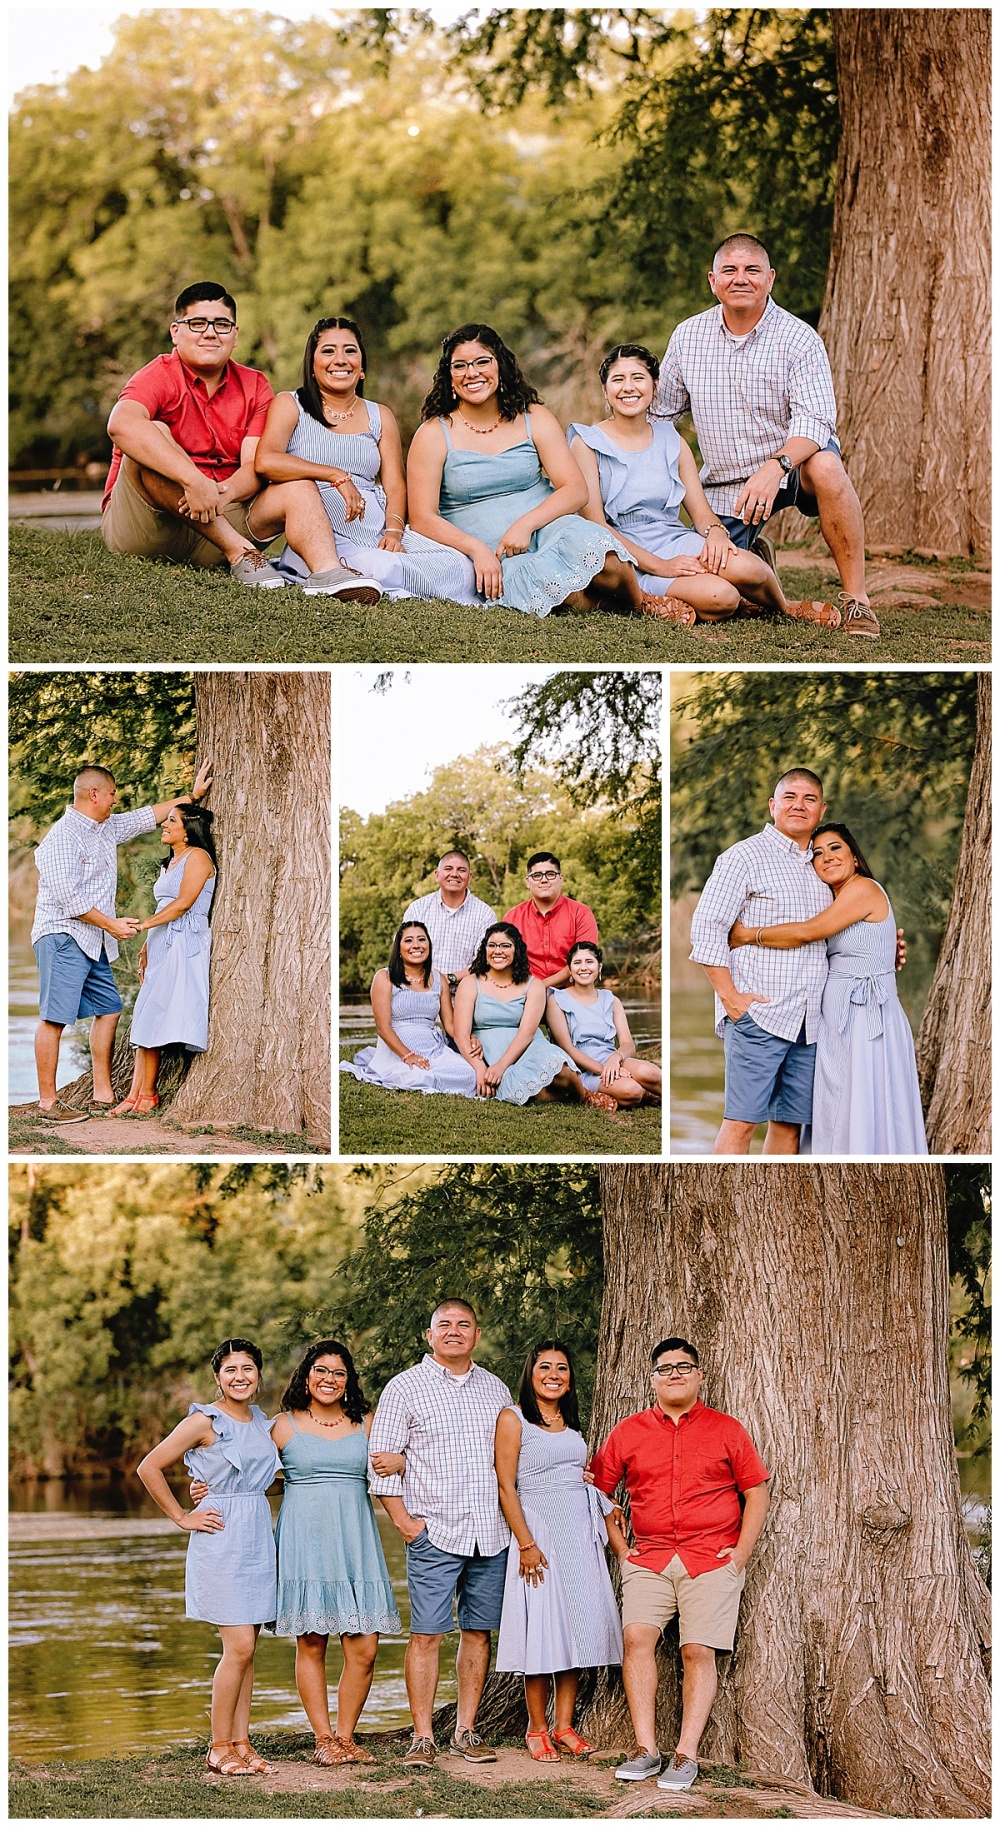 Carly-Barton-Photography-Family-Session-Landa-Park-New-Braunfels-Texas-Benavides_0007.jpg